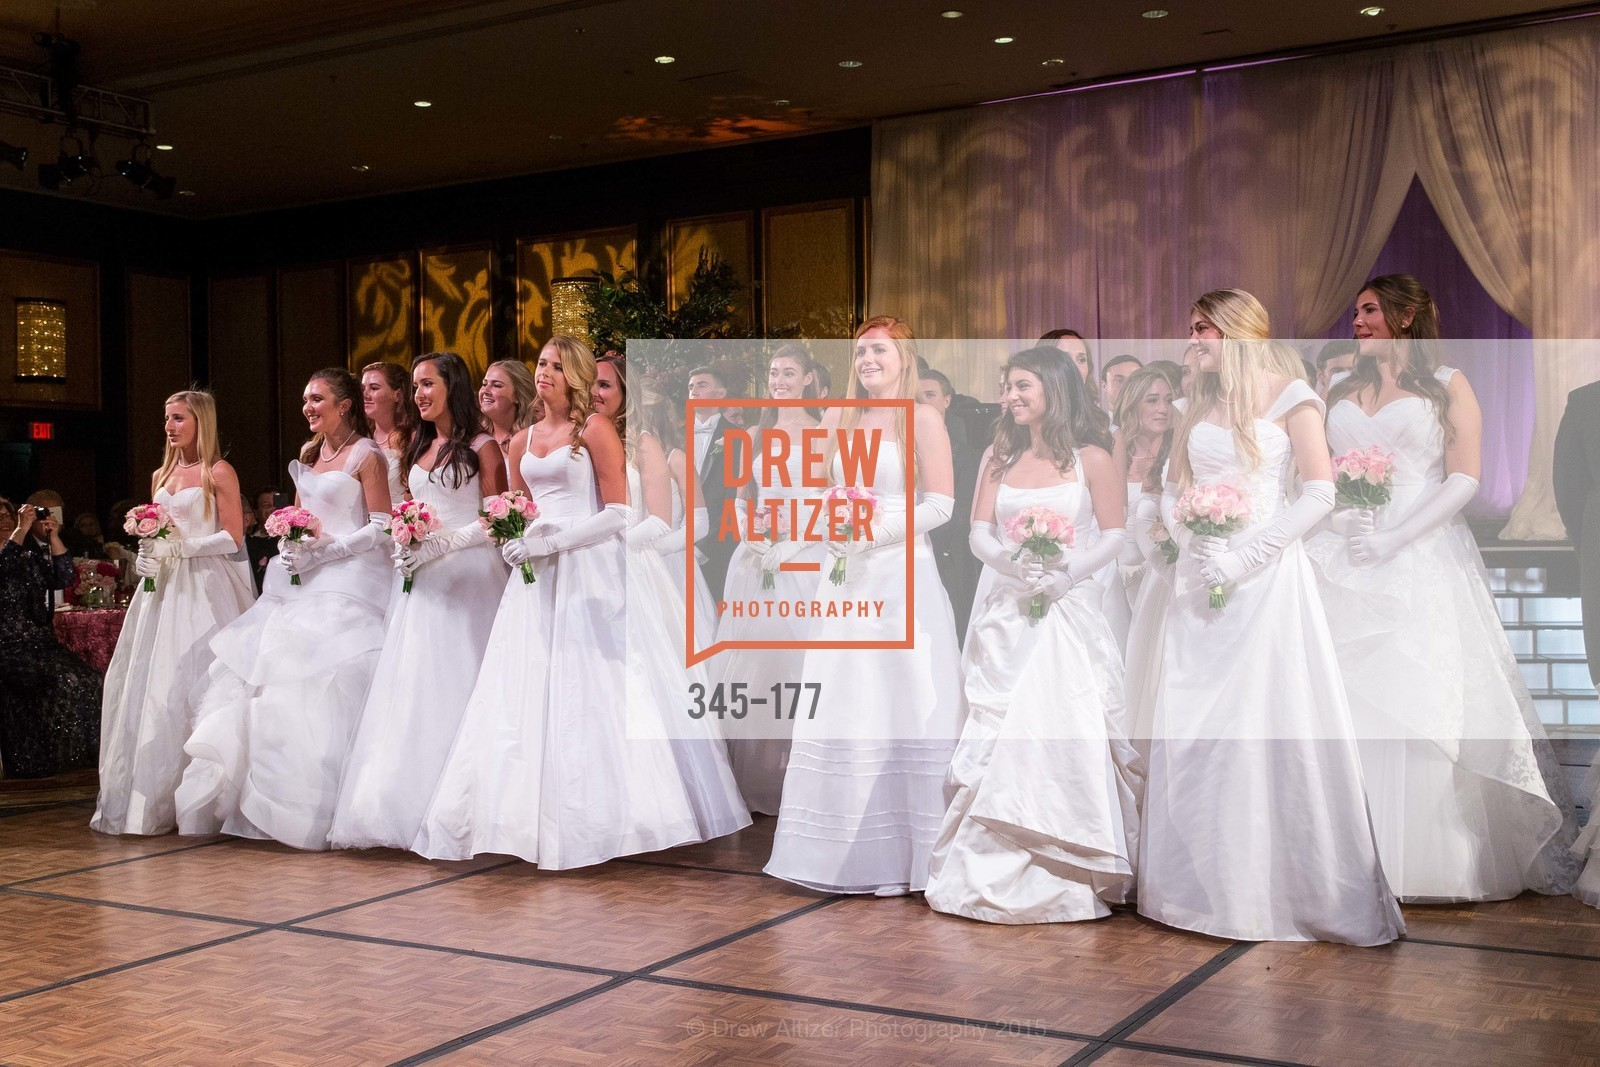 Jennifer Suzanne Reynolds, Jennifer Hannah Baylis, Solange Celeste Soward, Madeleine Elizabeth Lamm, Camille Anne Rich, Paige Alexandra Silverman, Julia Marley Chenette, Lindsey Marie Weber, The 2015 San Francisco Debutante Ball, The Westin St. Francis San Francisco Union Square. 335 Powell St, June 20th, 2015,Drew Altizer, Drew Altizer Photography, full-service agency, private events, San Francisco photographer, photographer california